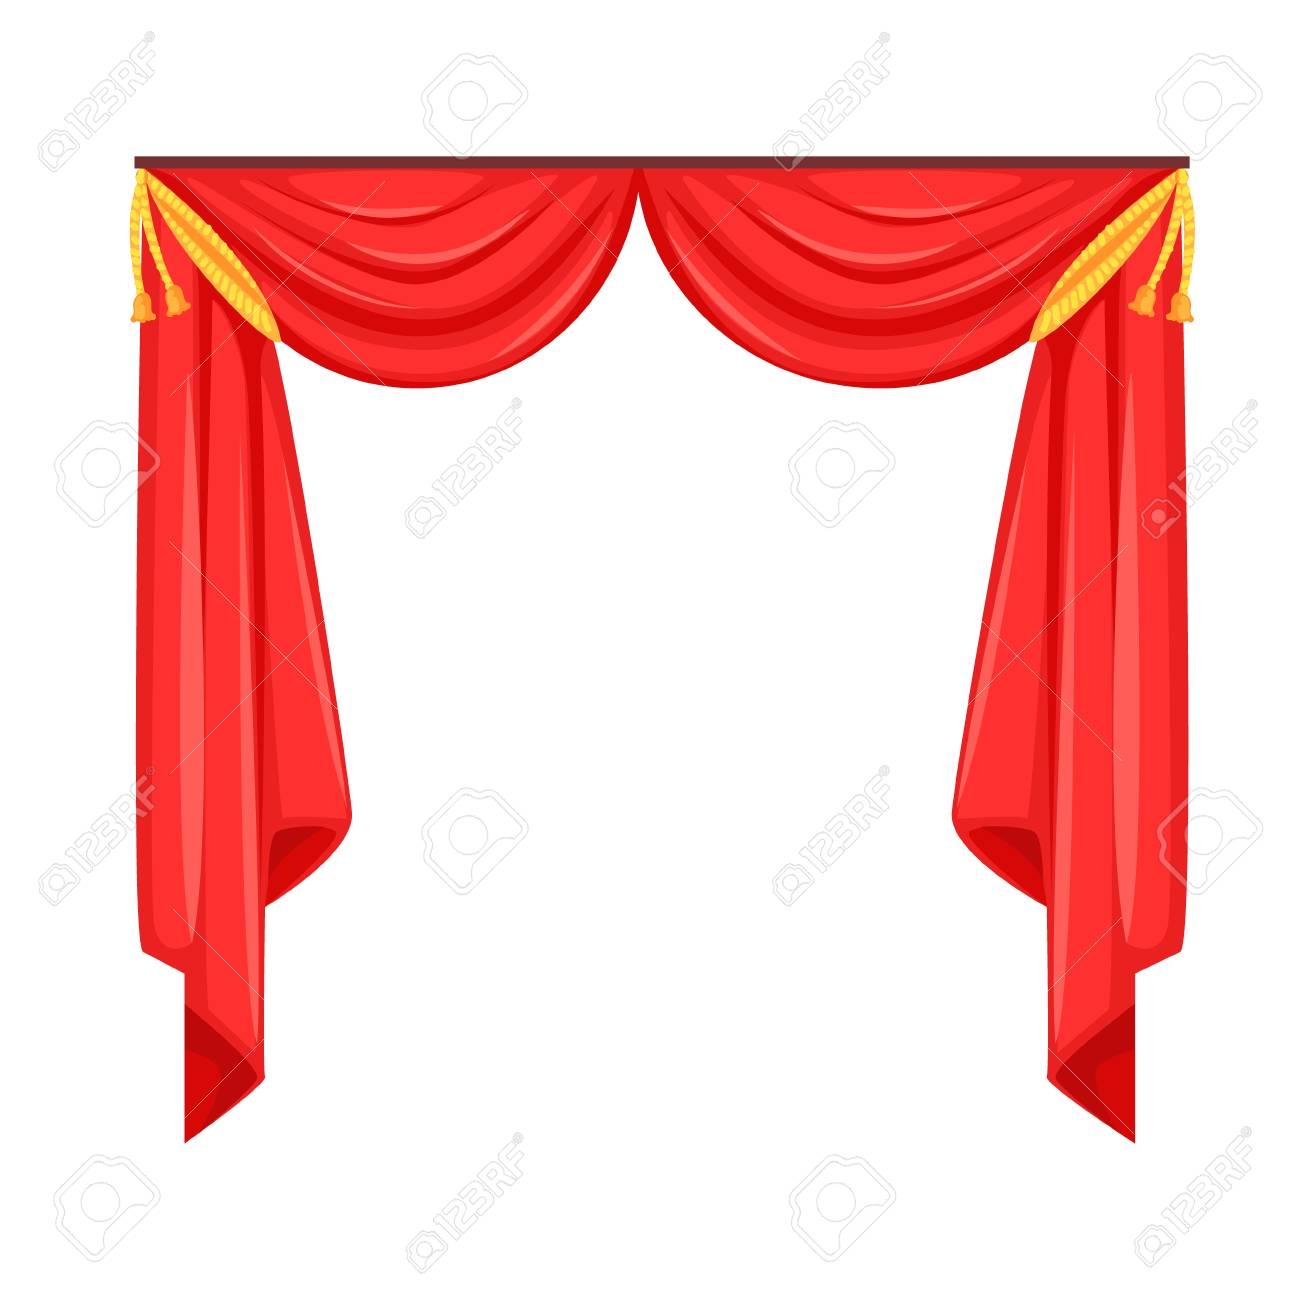 Stage Curtain Vector at GetDrawings.com.